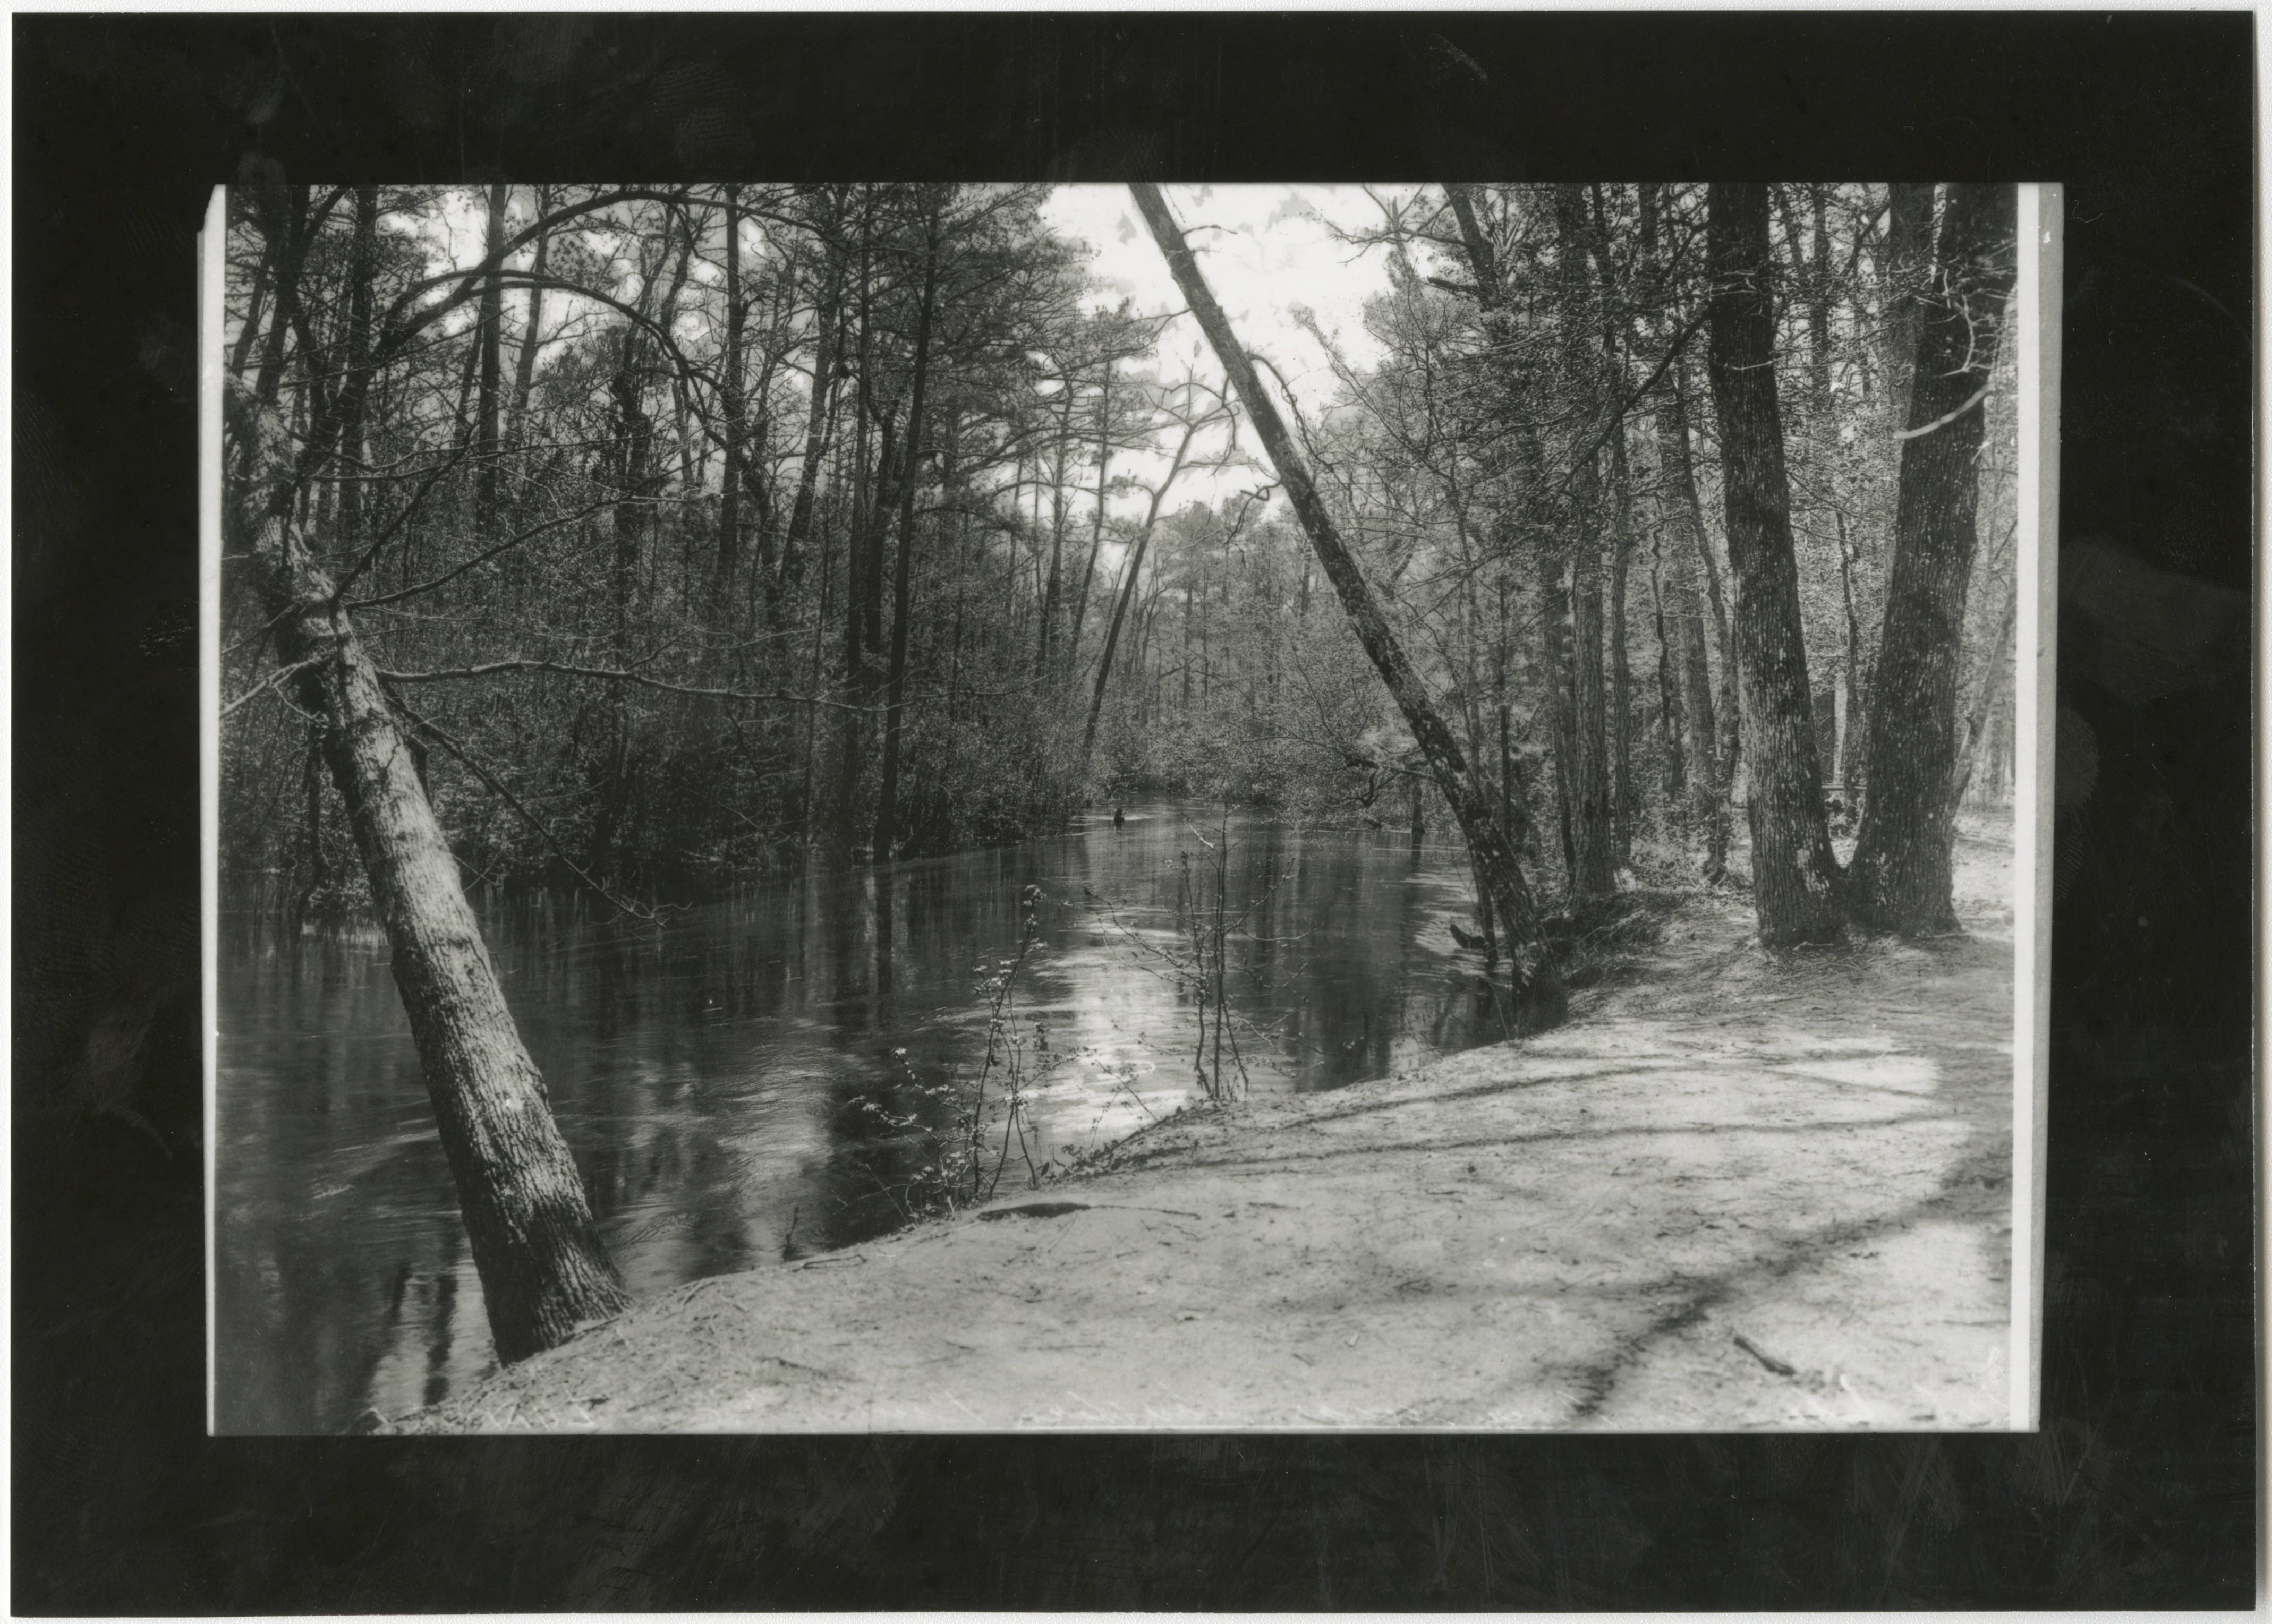 Photograph of Lumber River